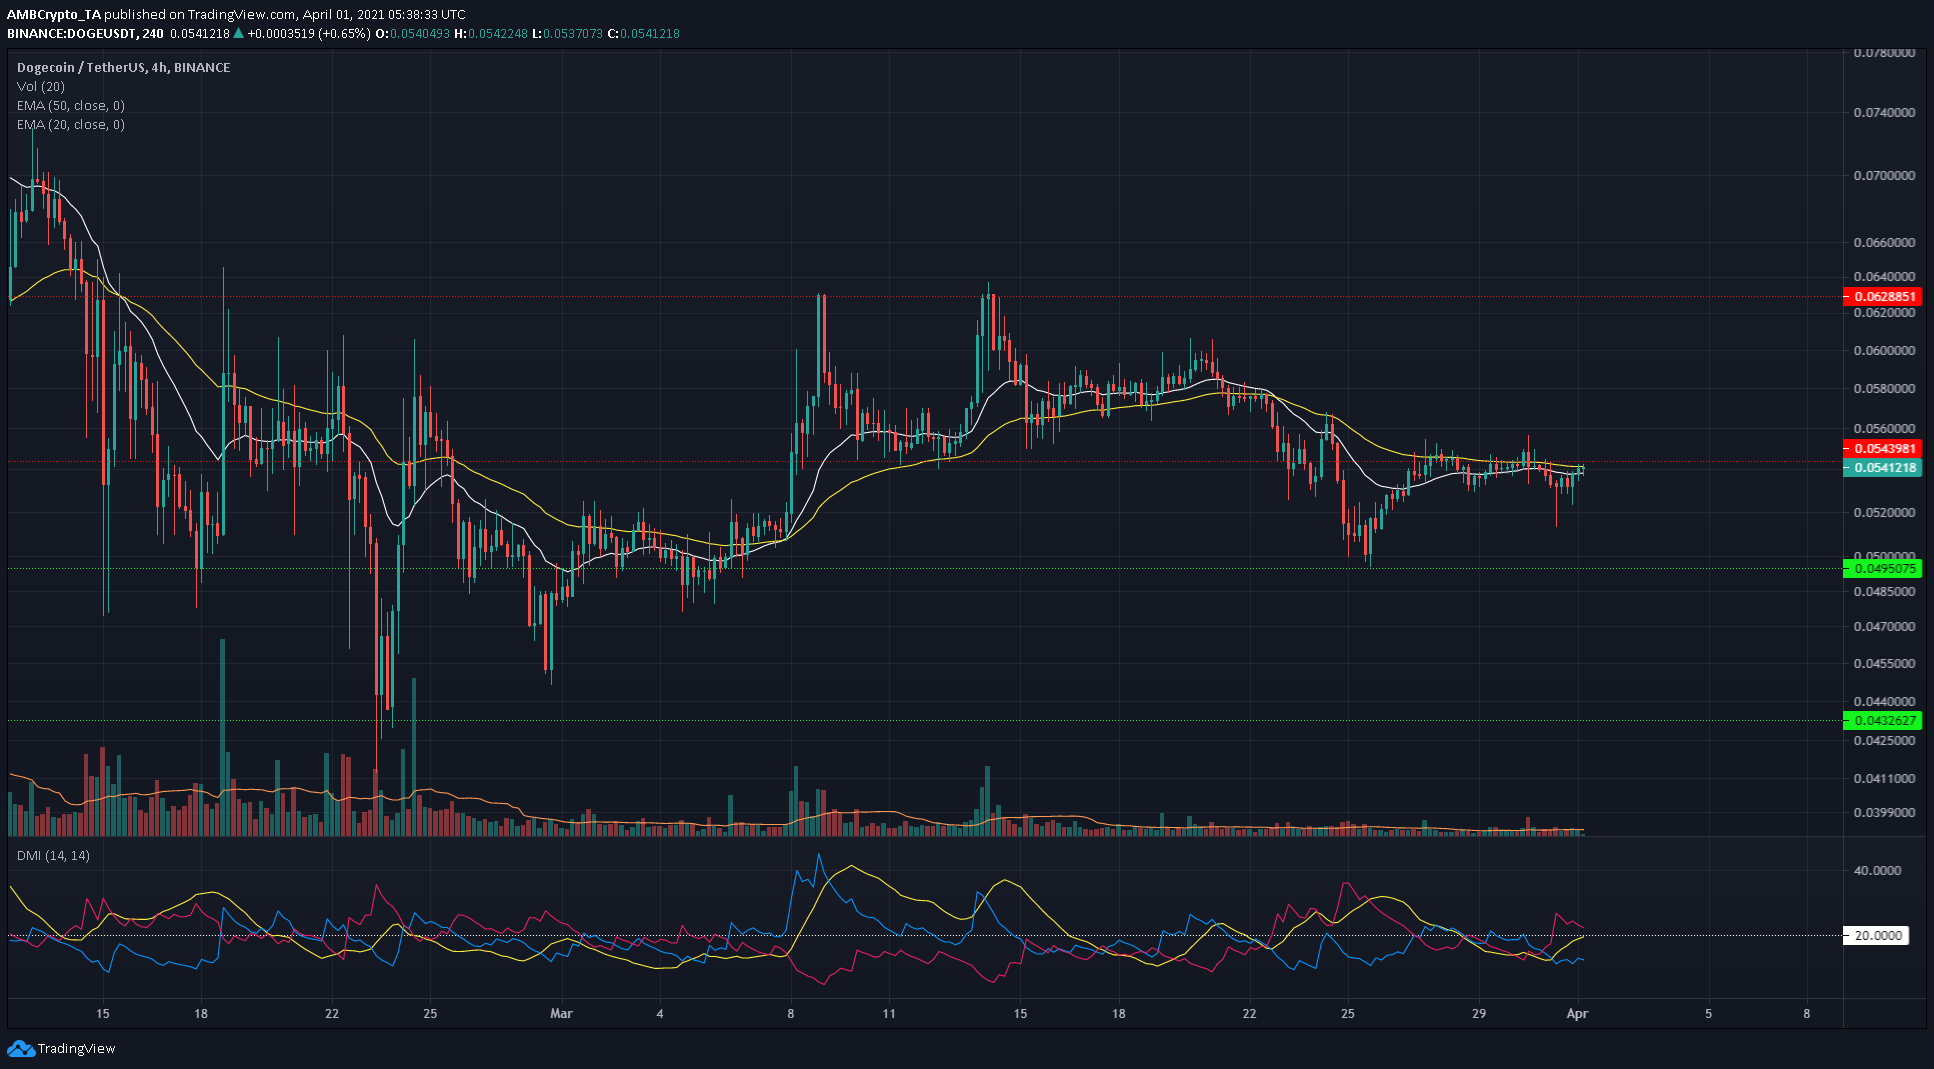 Bitcoin SV, Waves, Dogecoin Price Analysis: 01 April